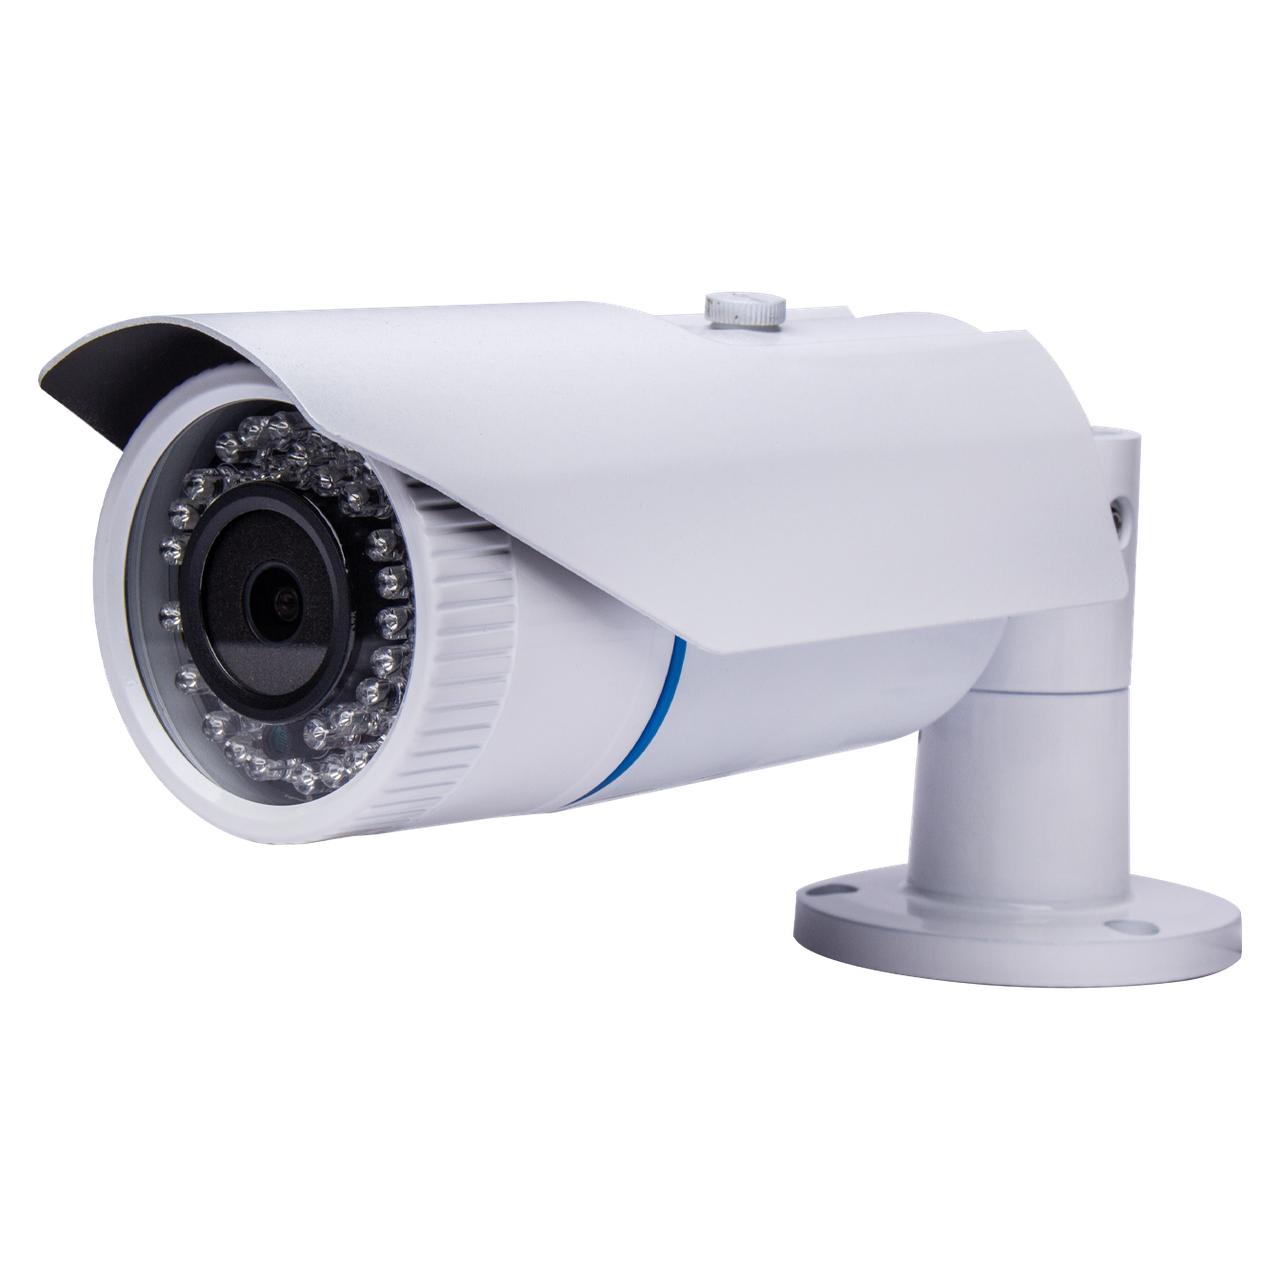 Наружная IP камера Green Vision GV-106-IP-X-COC50-20 POE 5MP